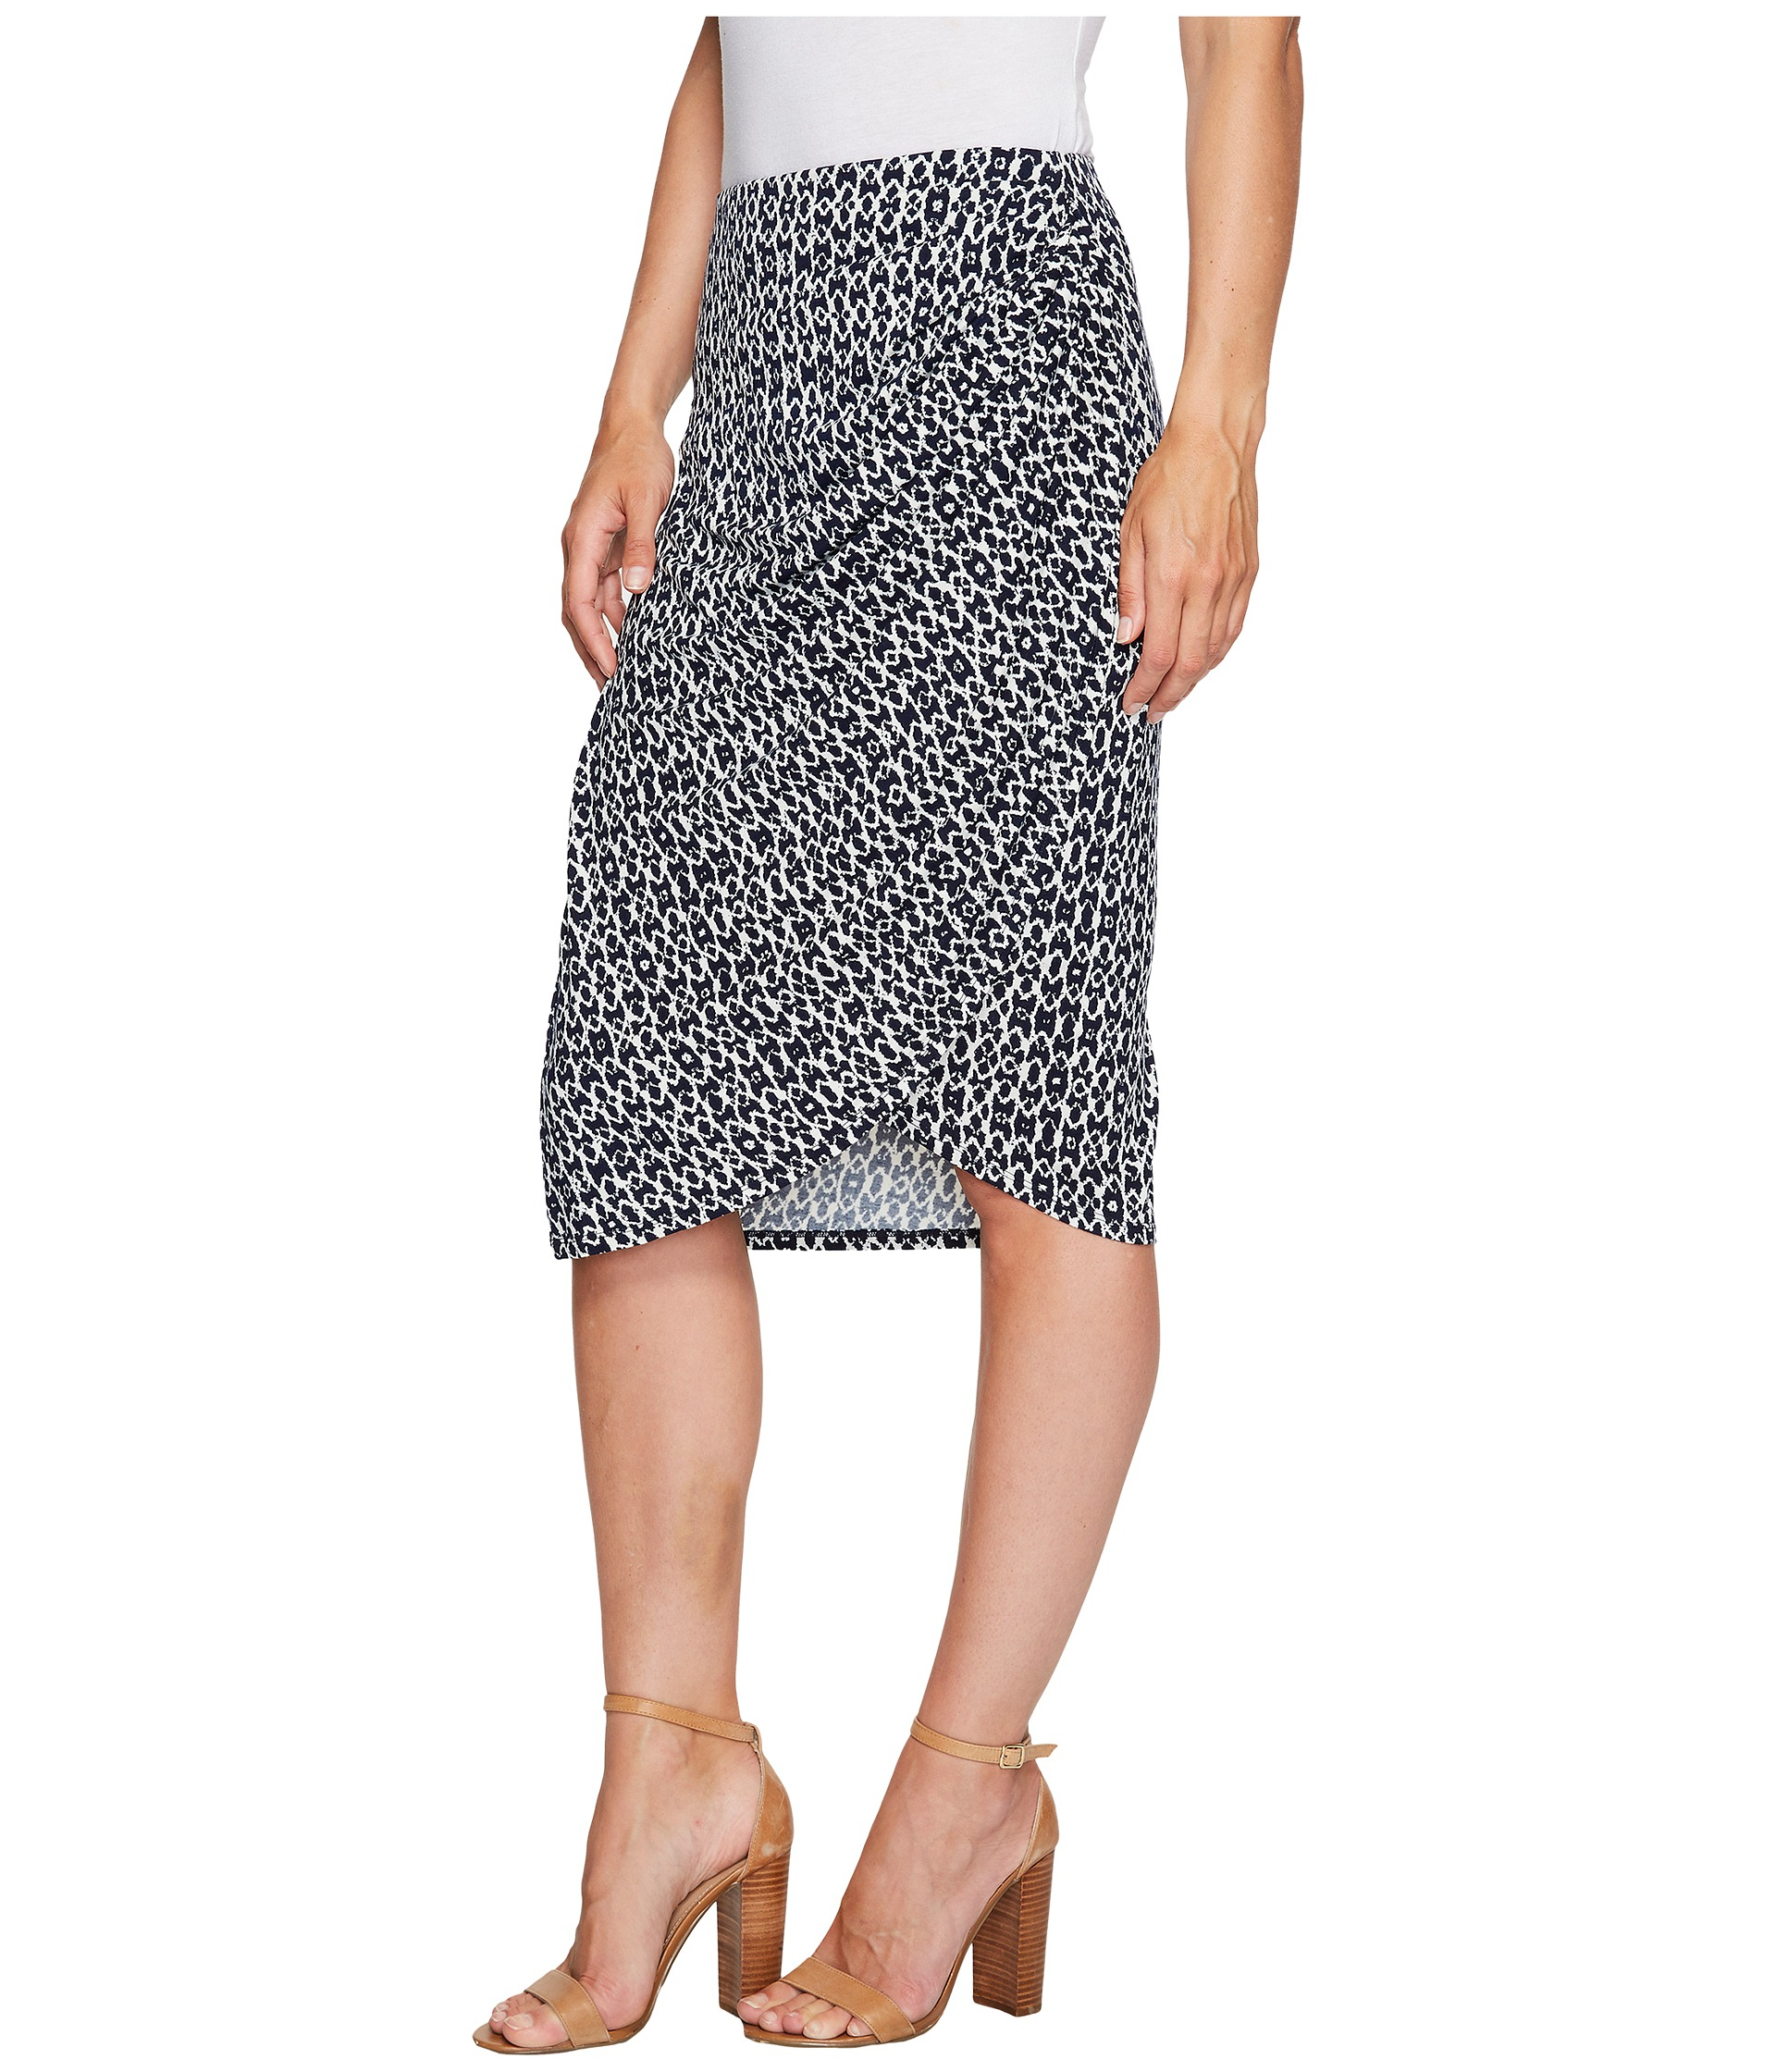 b collection by bobeau reiley side gather skirt